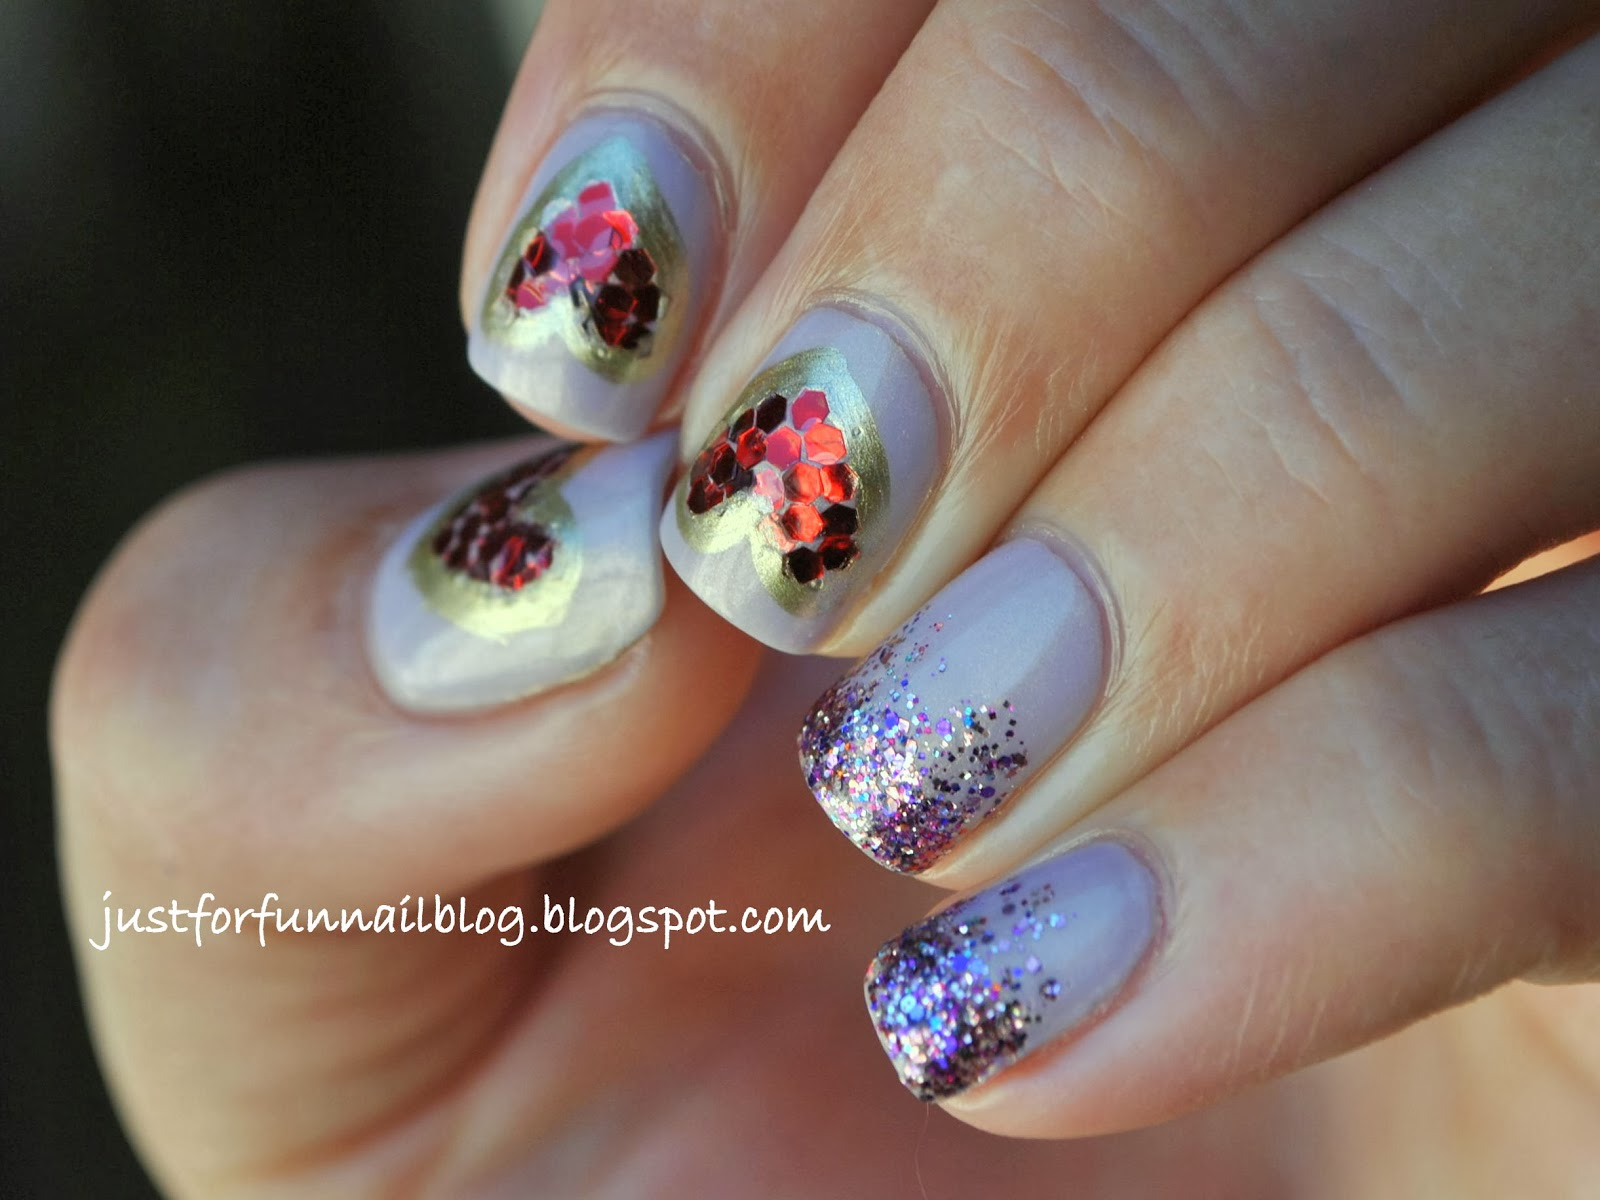 Week of Love V'day Nail Art Challenge - Day 4 - Hearts